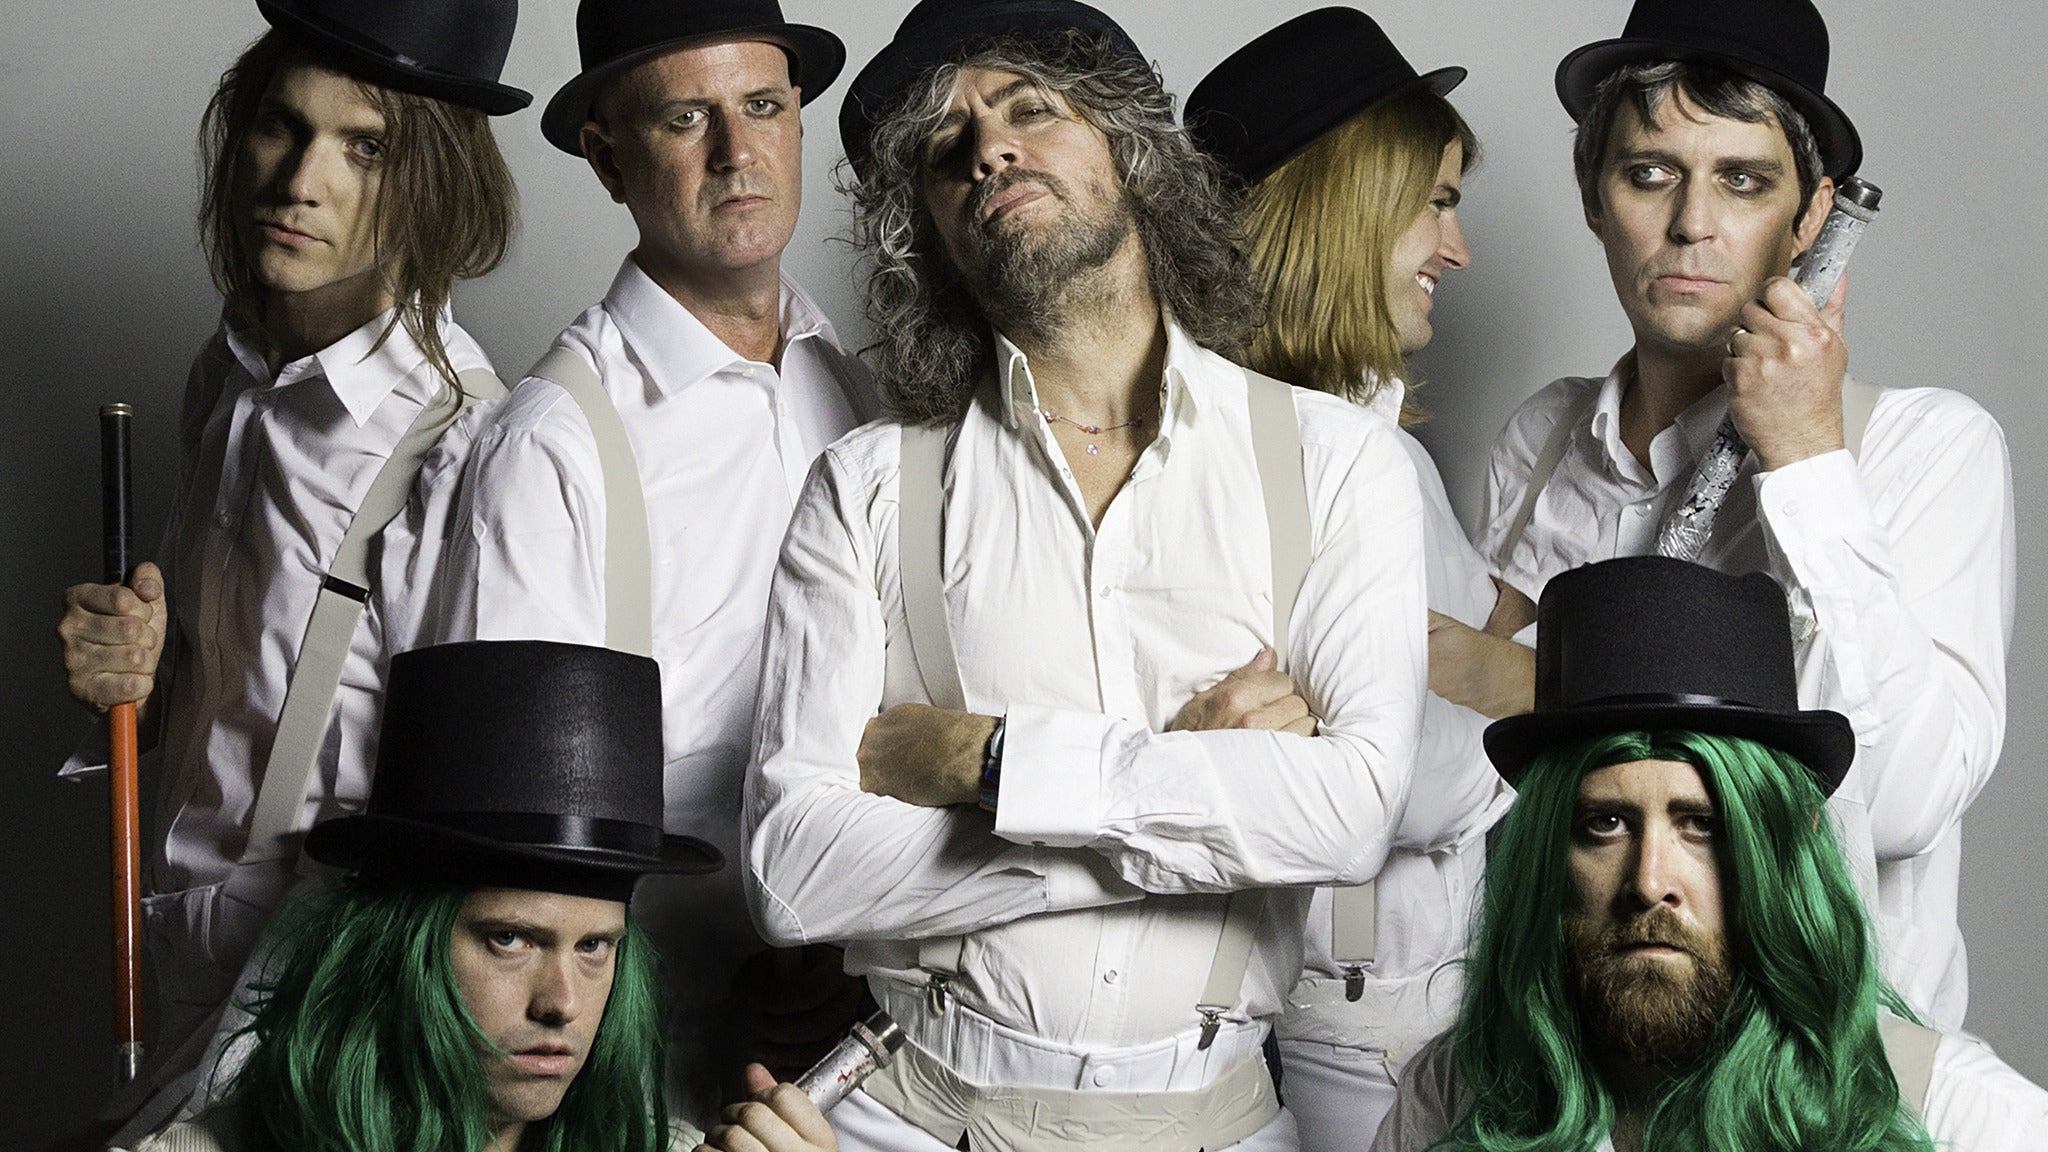 The Flaming Lips w/ Claypool Lennon Delirium